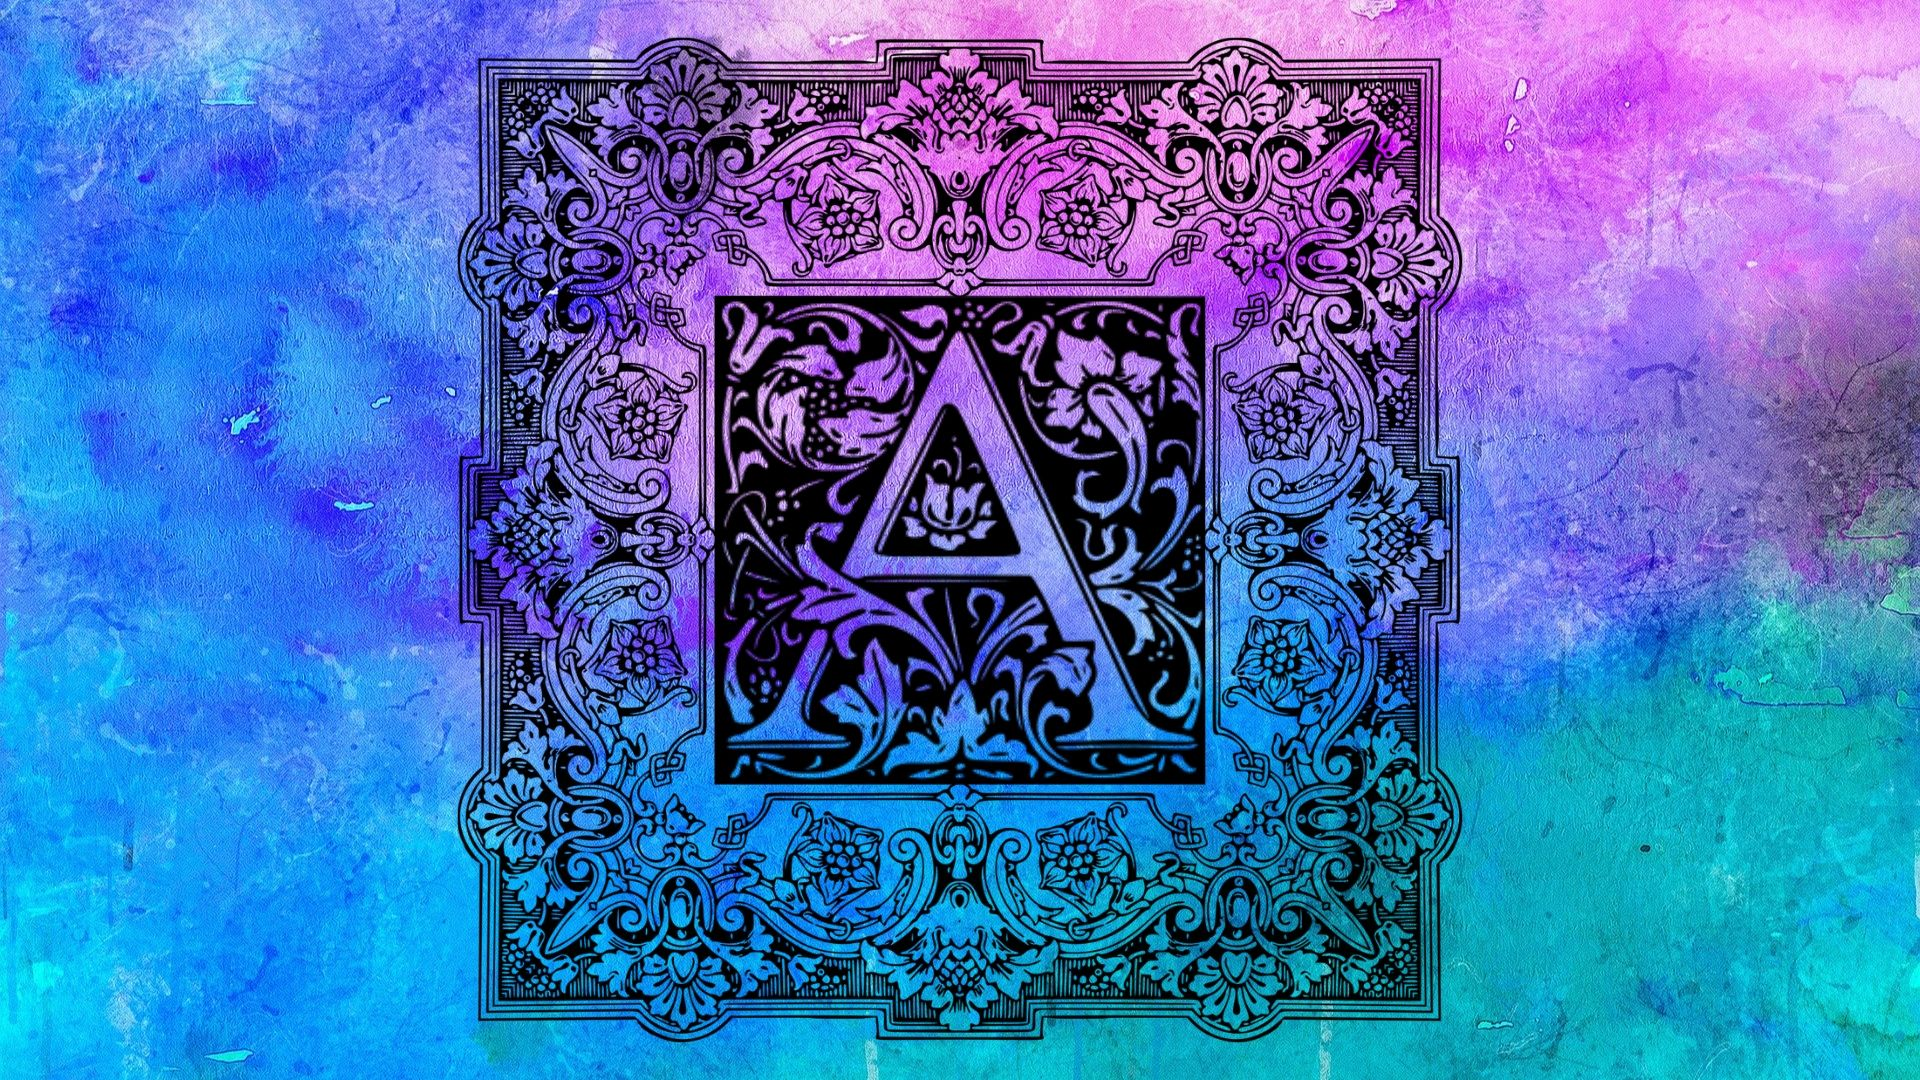 illustrated letter A with blue and purple watercolour background and floral frame